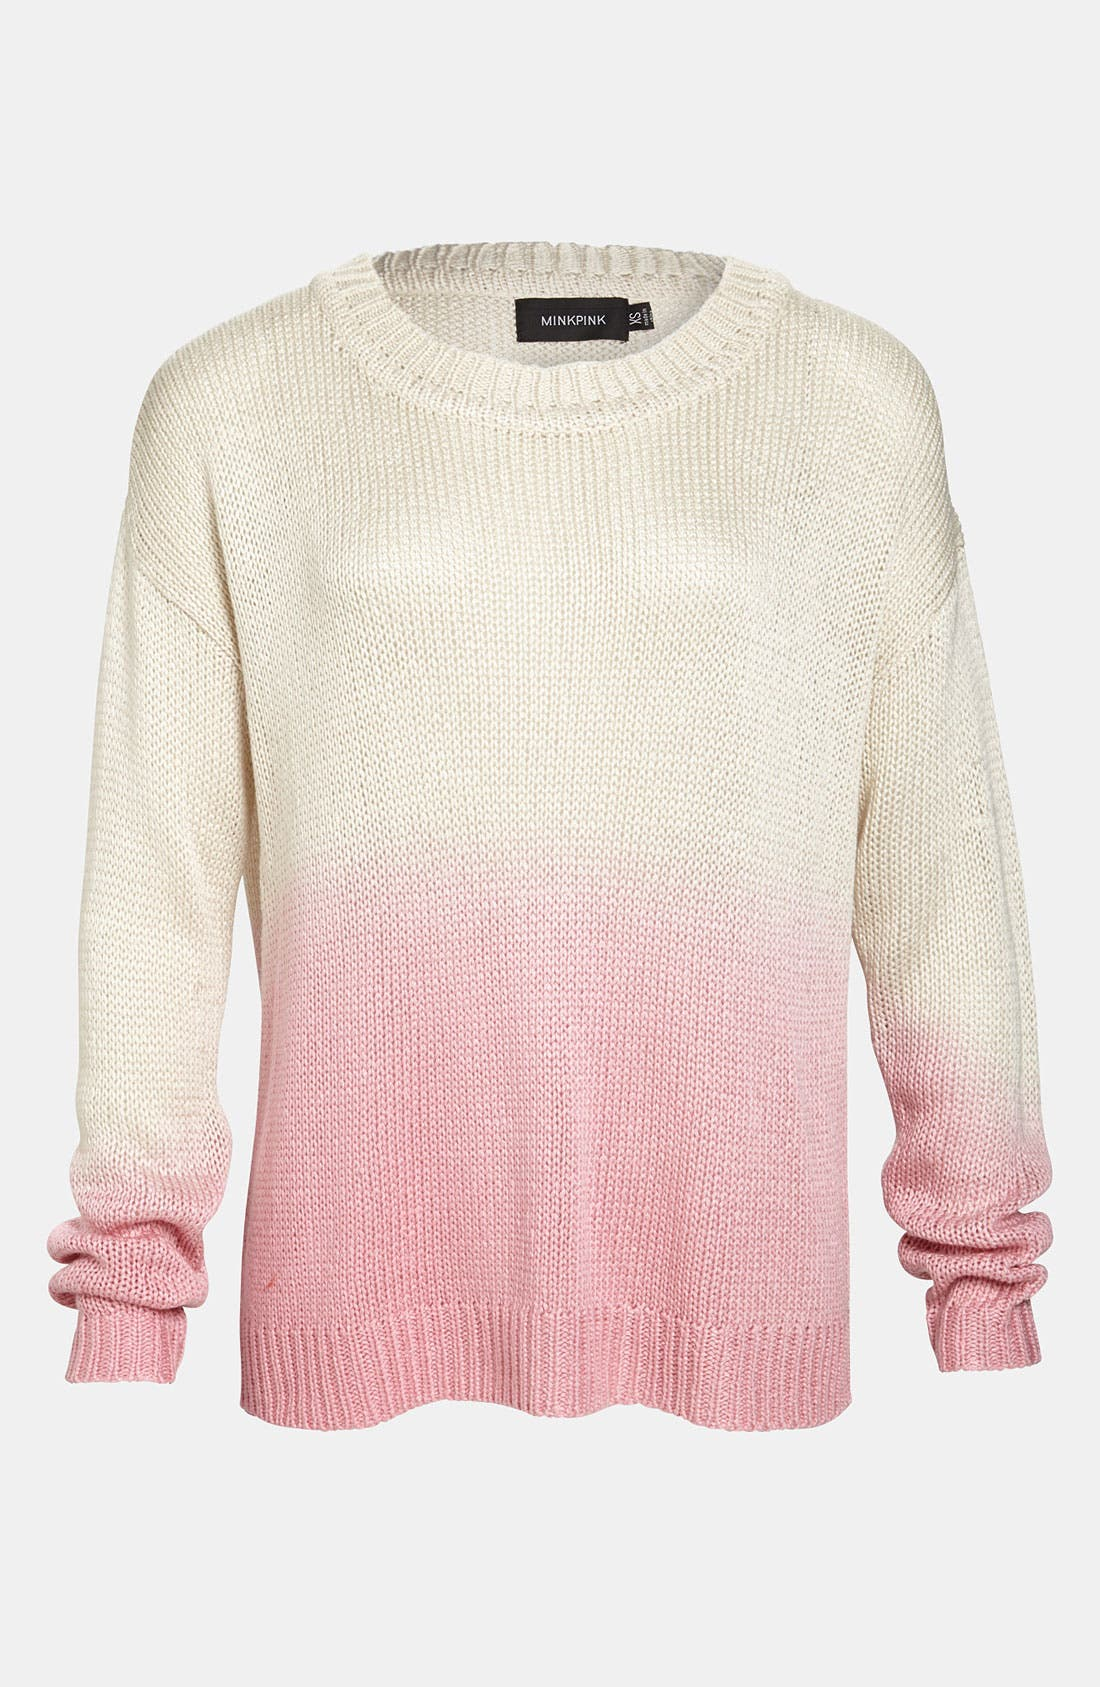 Main Image - MINKPINK 'Melting Moments' Dip Dye Sweater